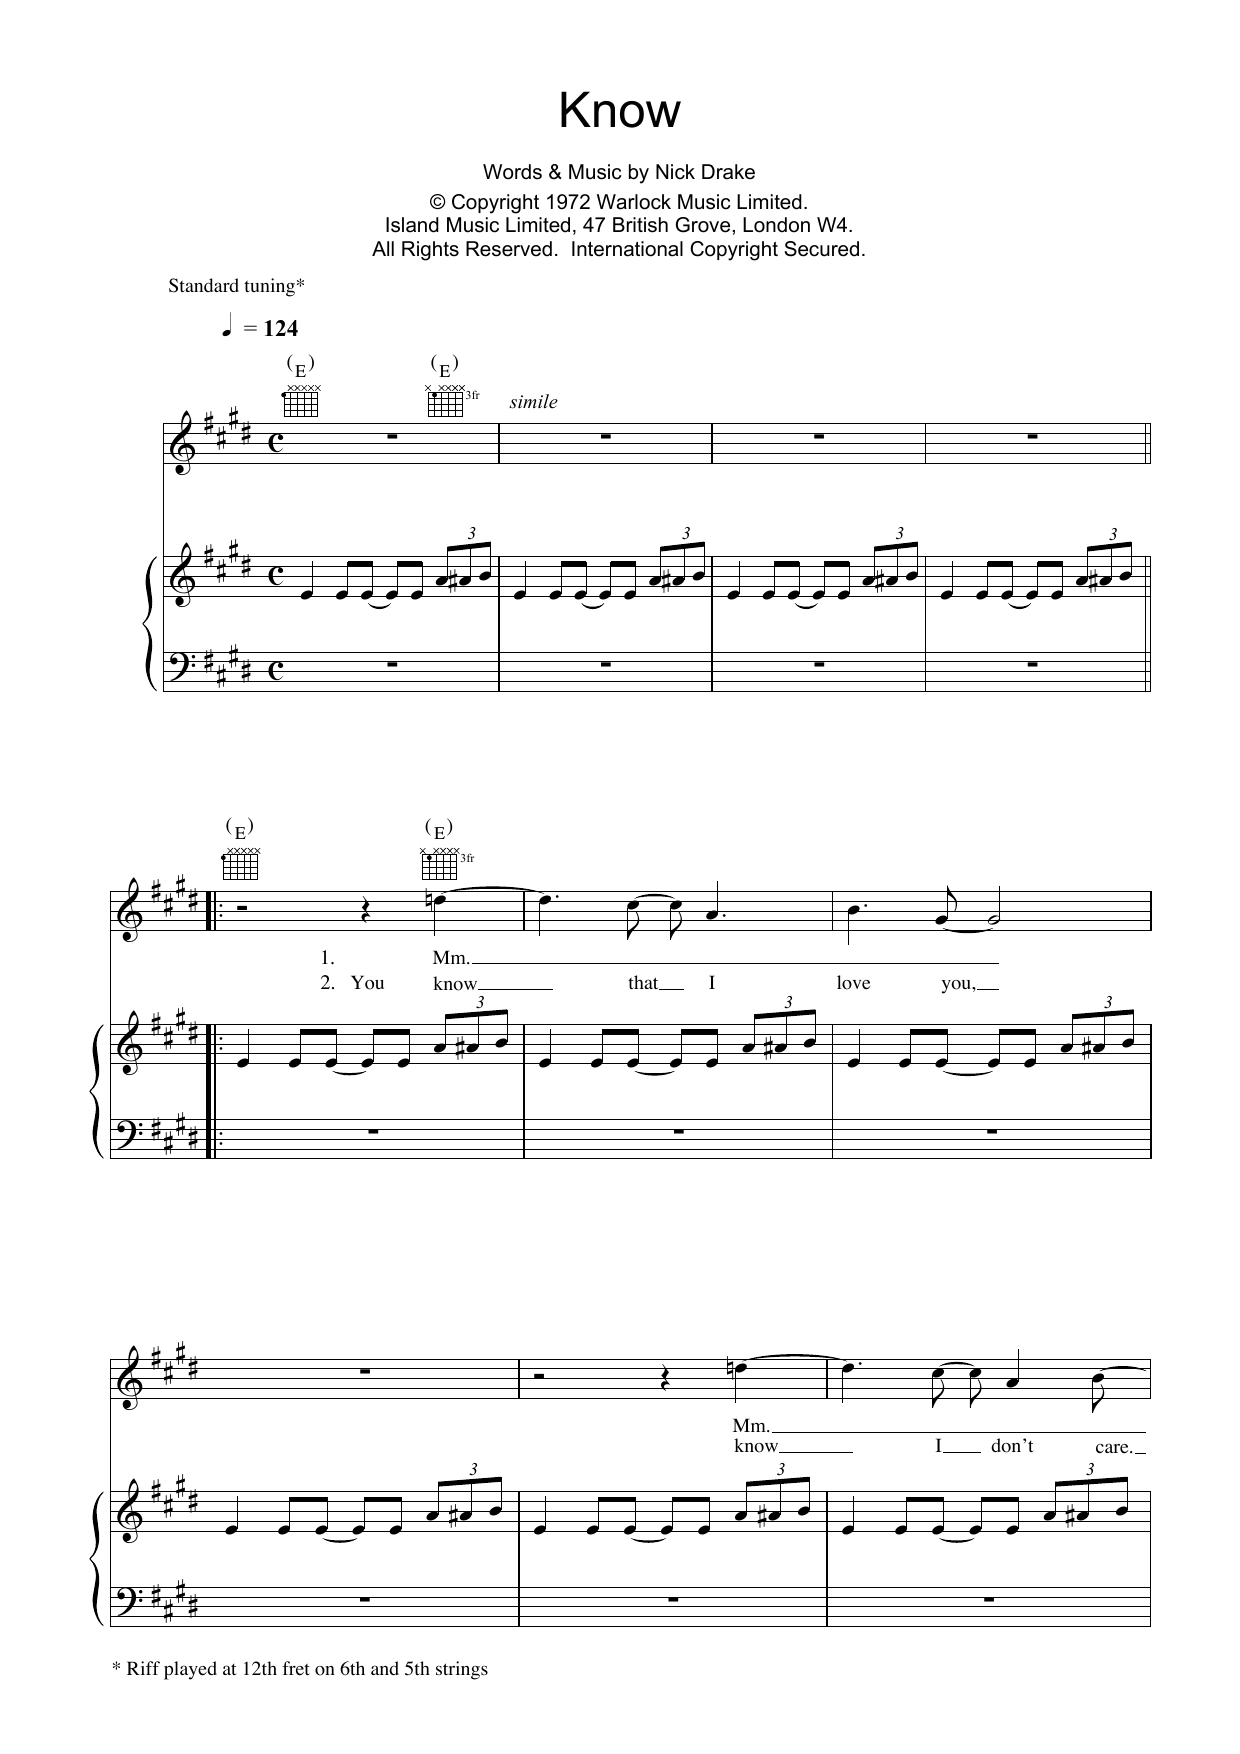 Know Sheet Music